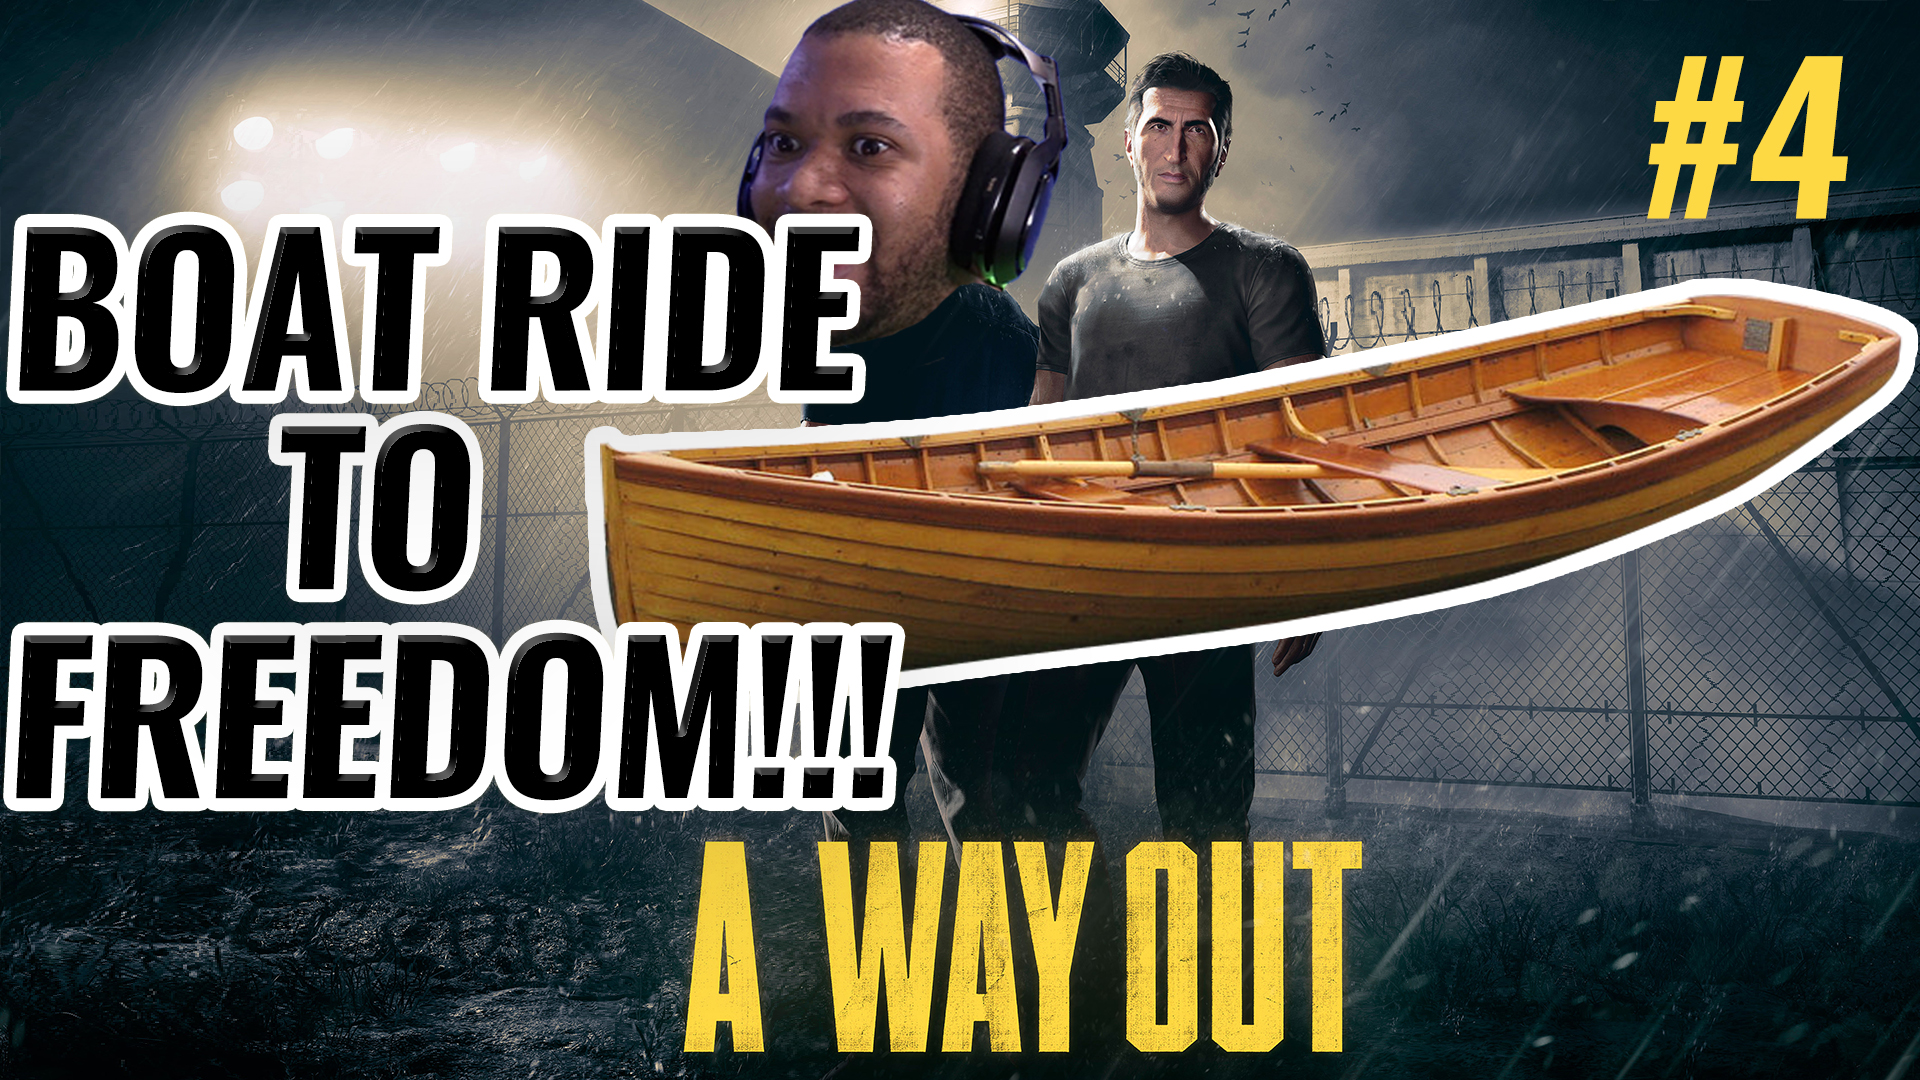 BOAT RIDE TO FREEDOM!!! [A WAY OUT #4] Thumbnail